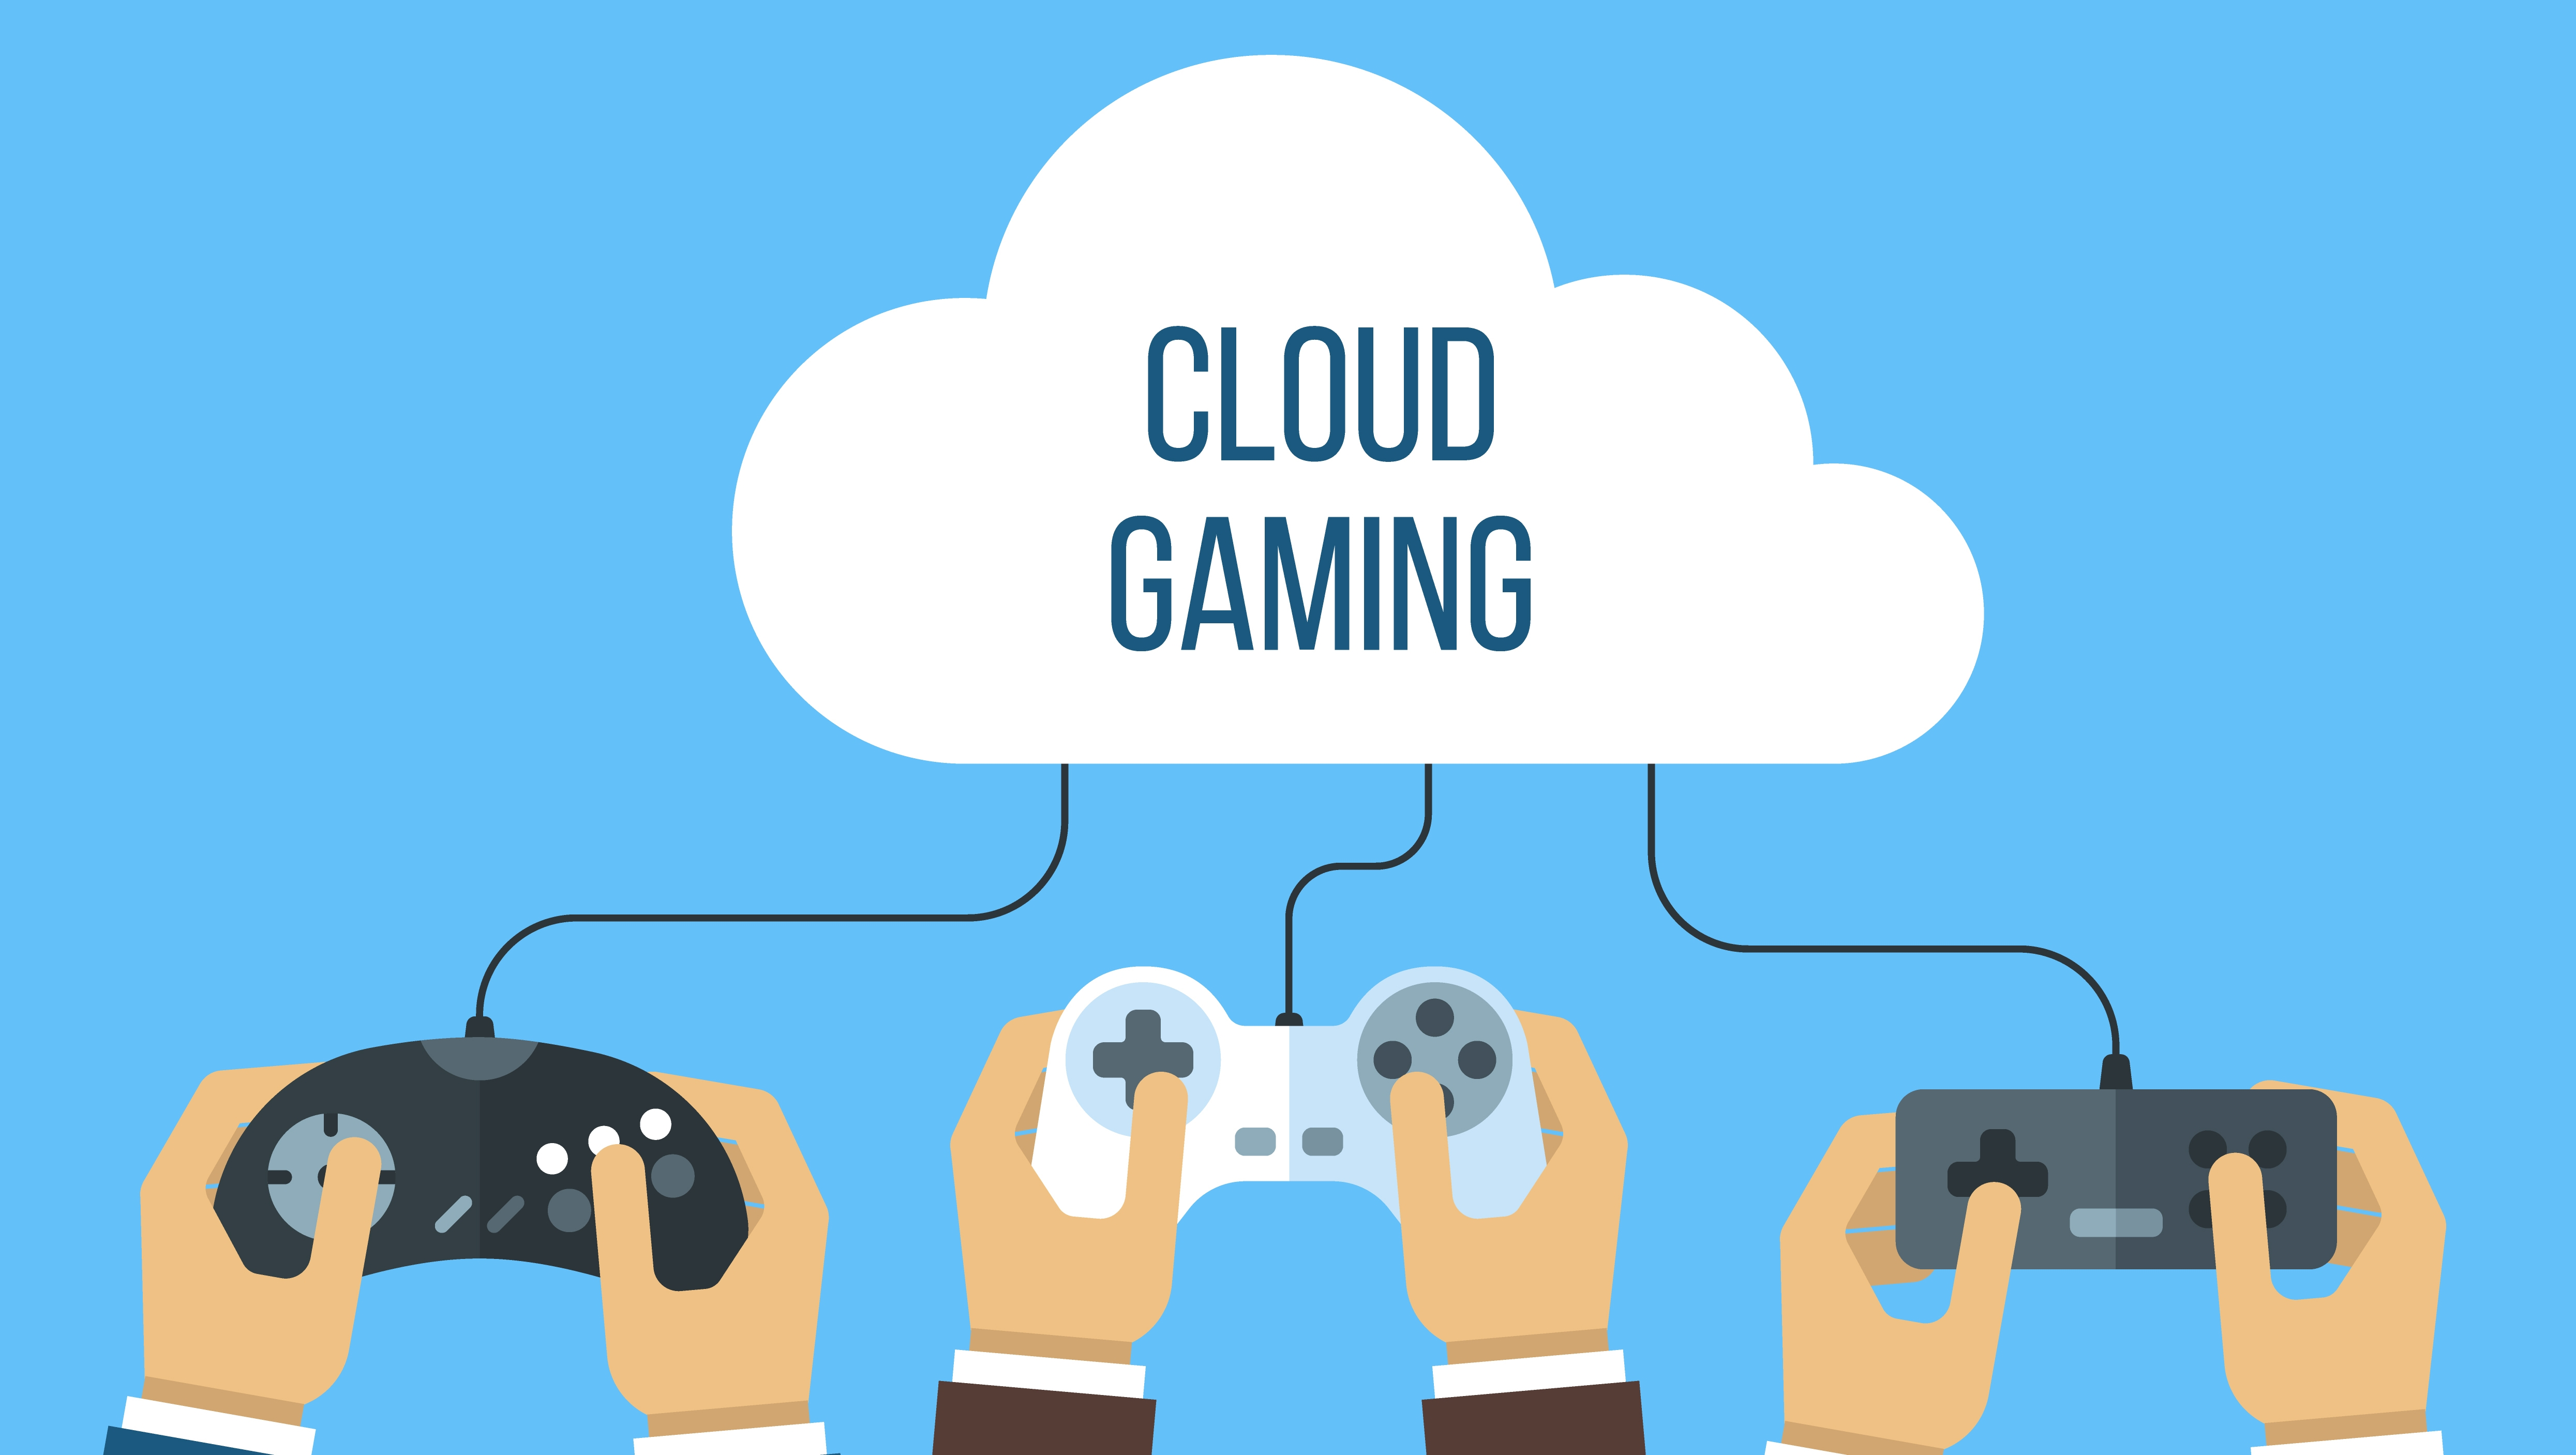 Cloud Gaming Market 2020: Global Analysis, Industry Growth, Current Trends and Forecast till 2025